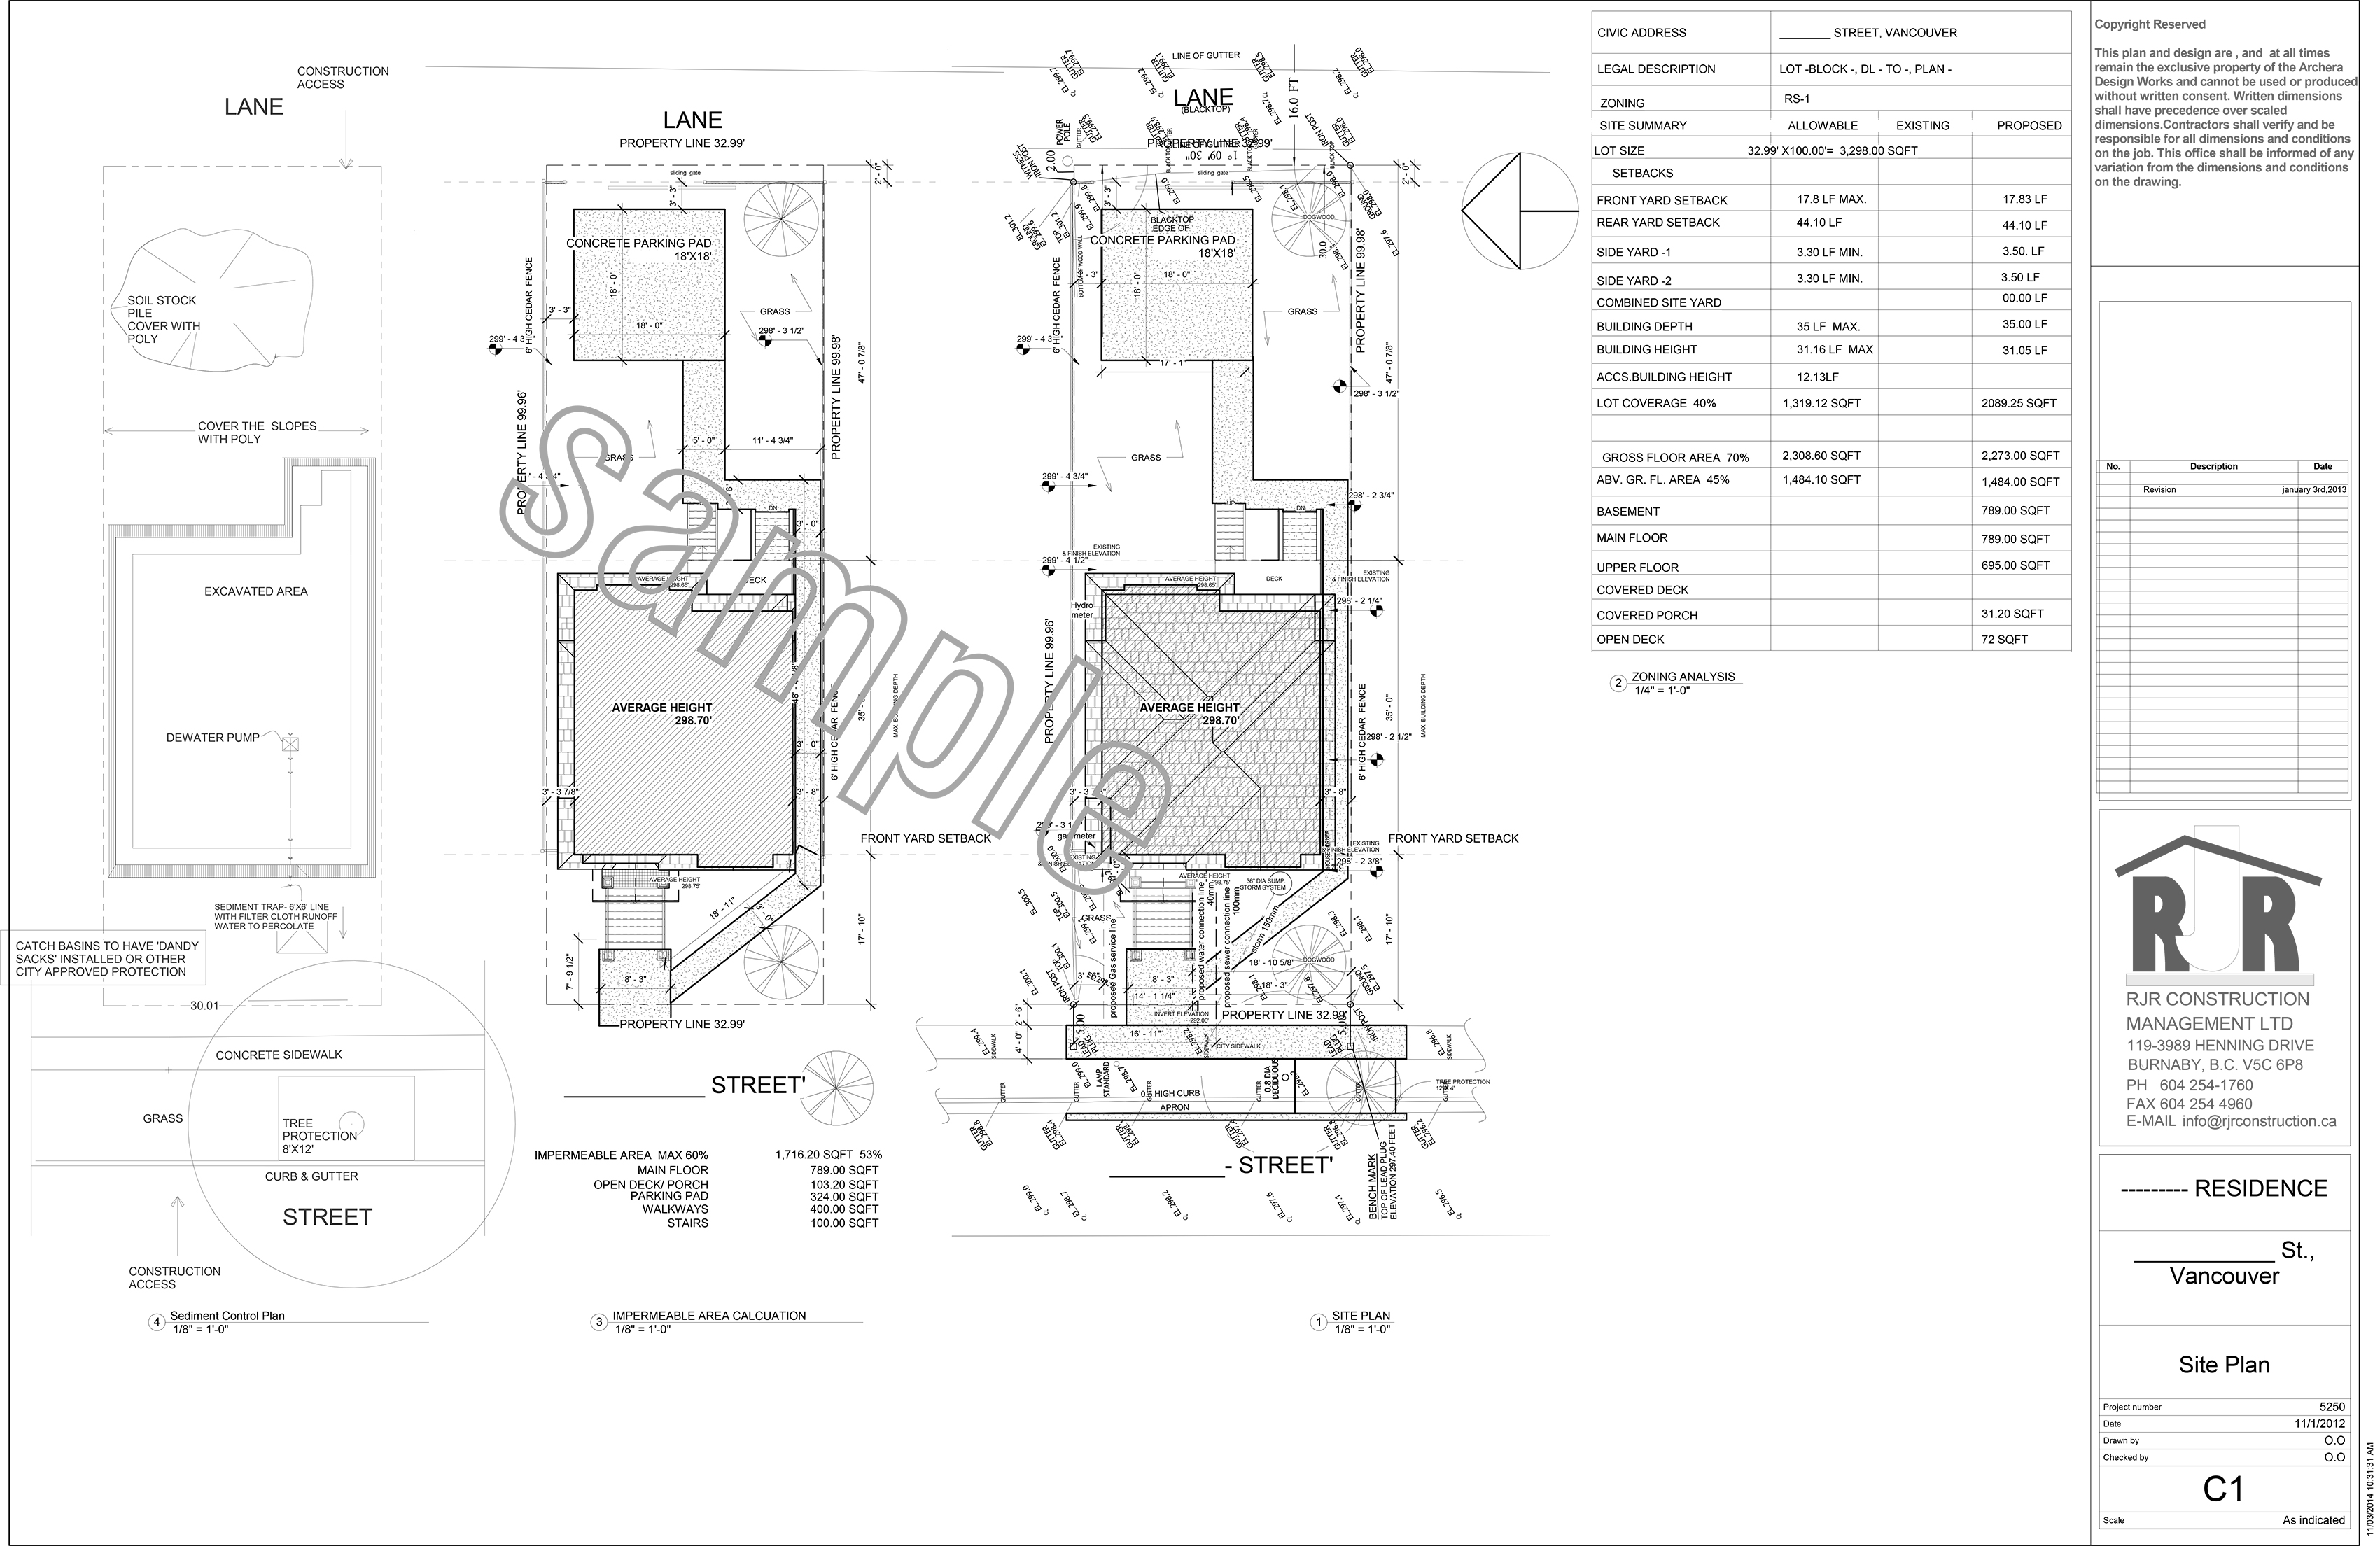 Construction Site: Construction Site Plan